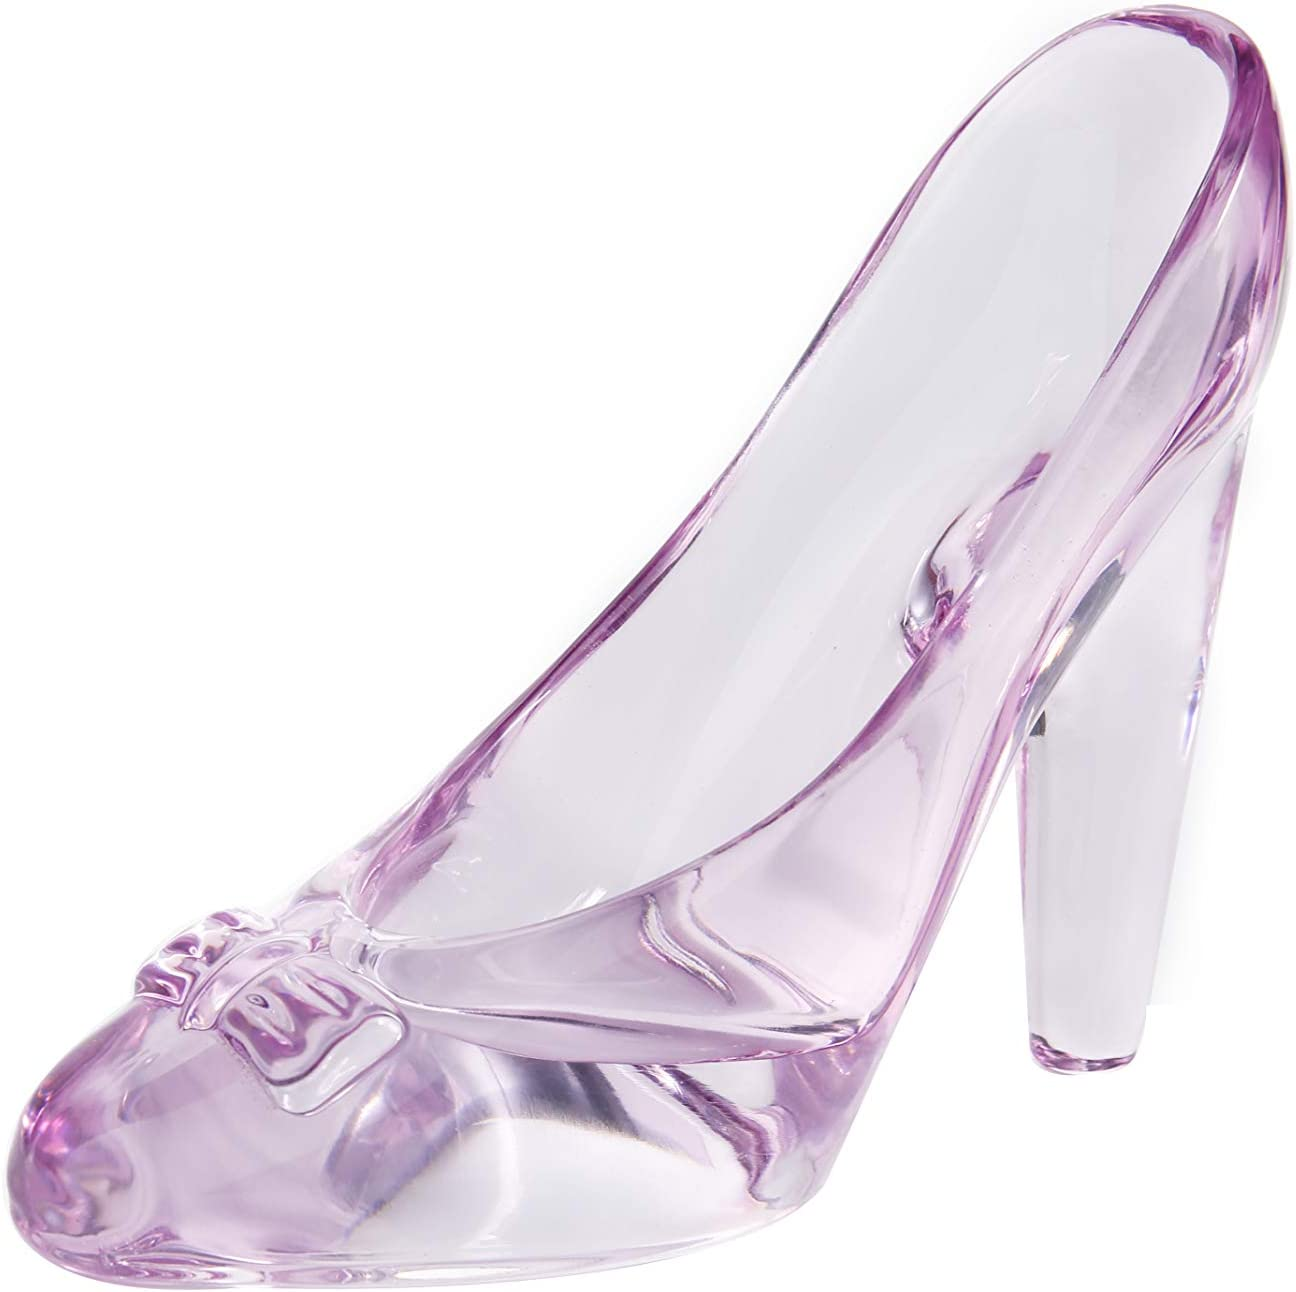 N / A Colorful Crystal Shoes, Can Be Used As a Desk Ornaments or a Gift to Friends,1PCS,L5.3''W2.6''H4.5'', Purple